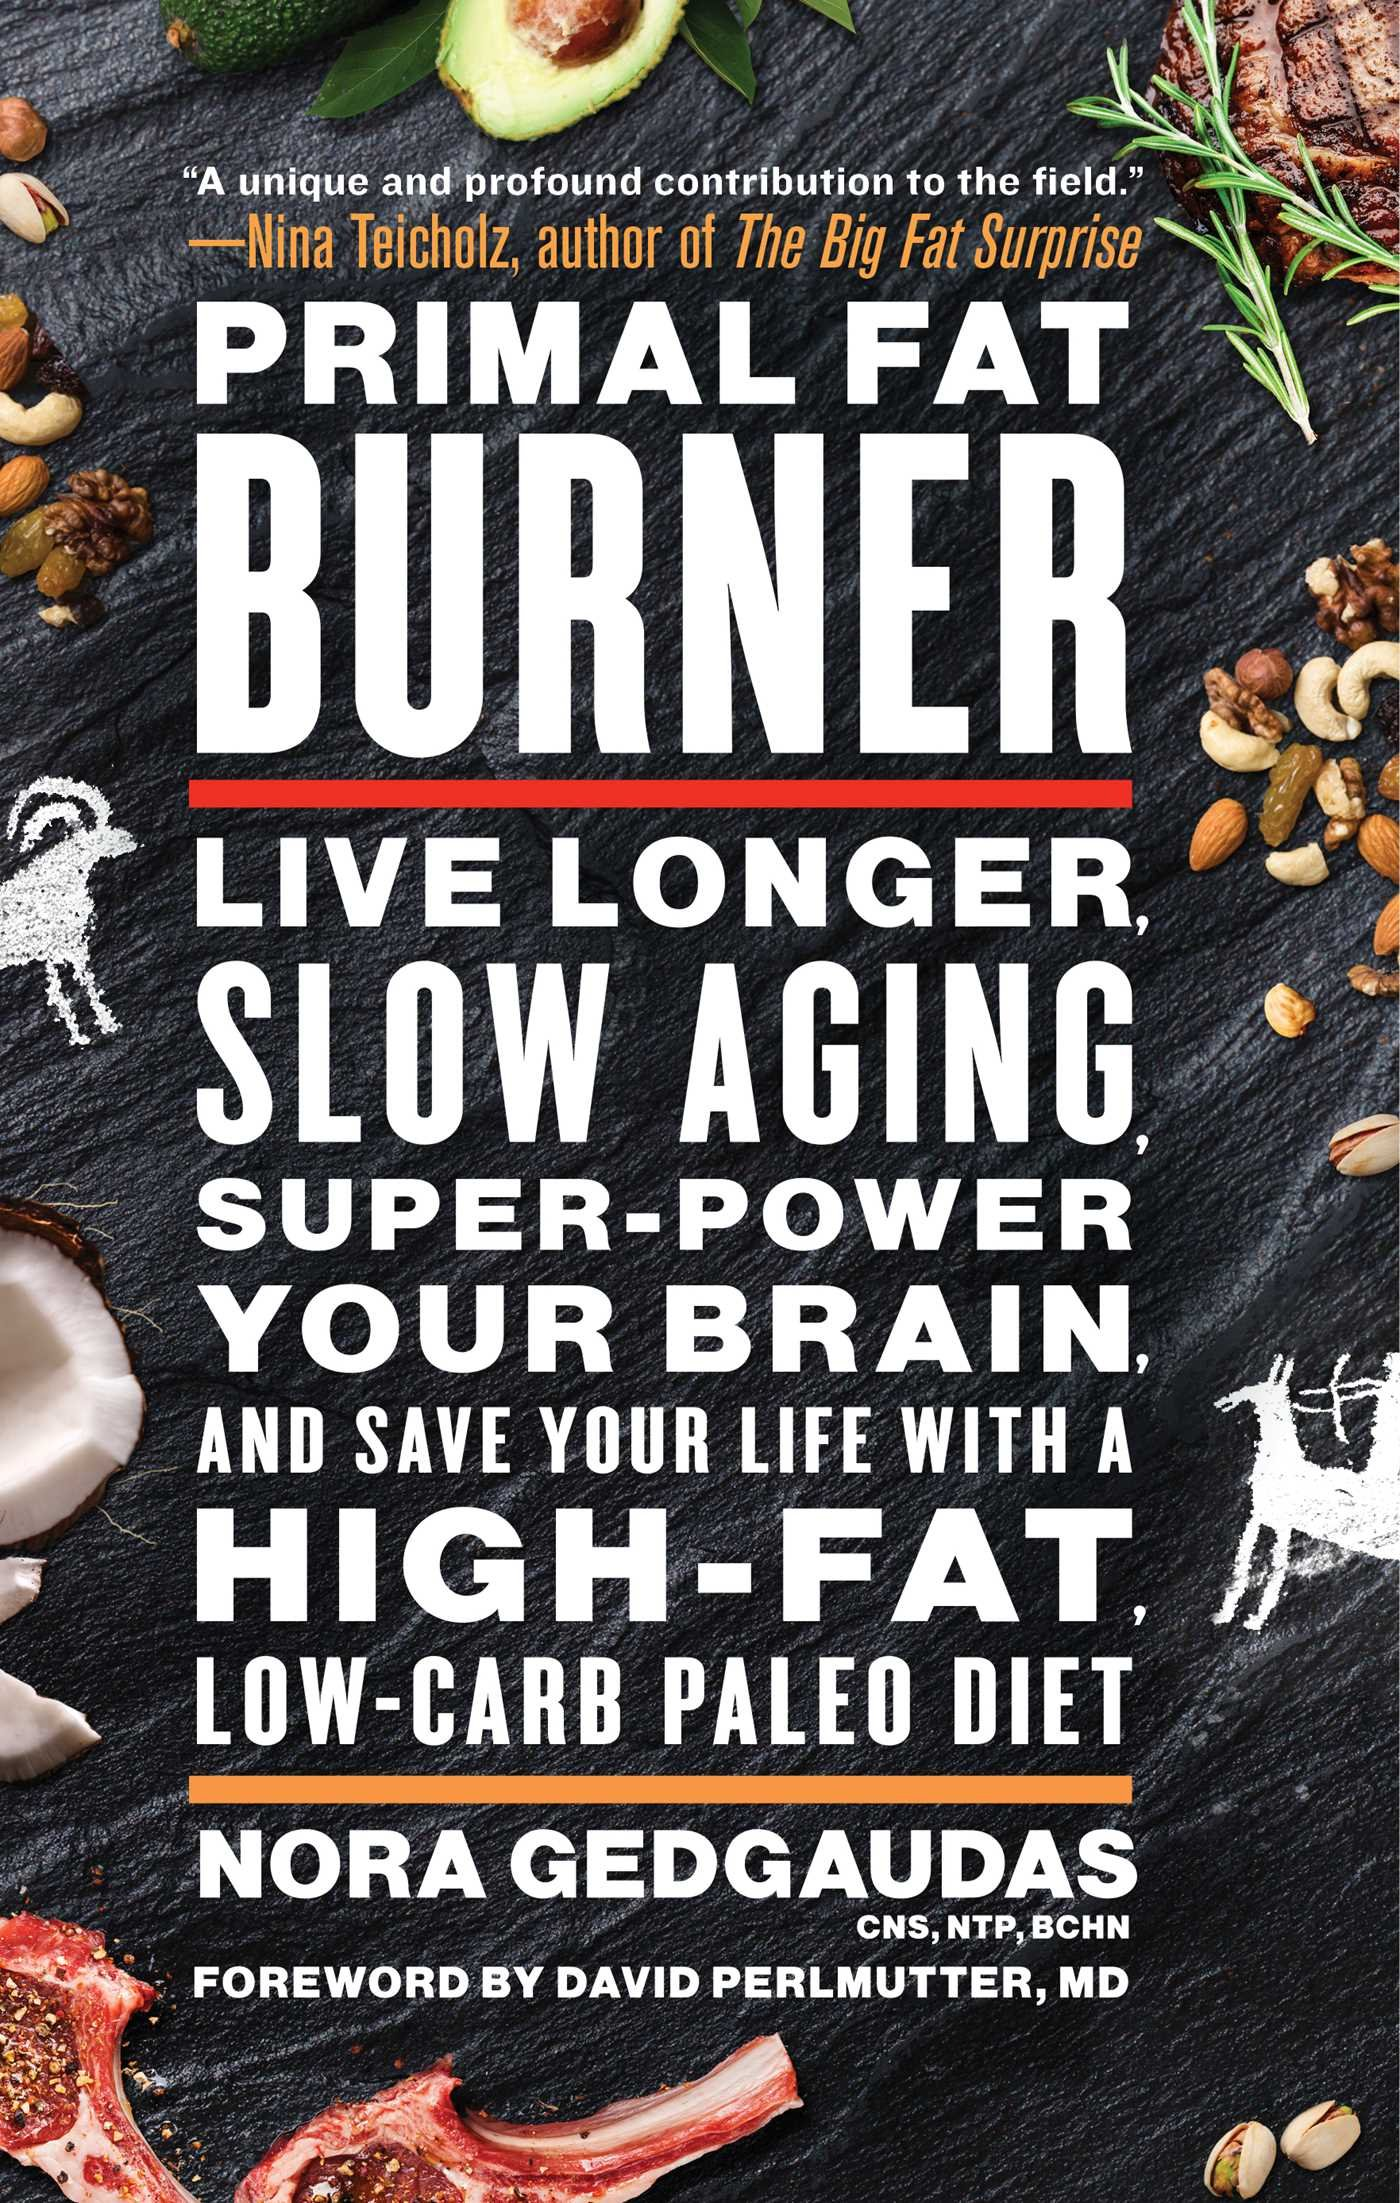 Primal fat burner live longer slow aging super power your brain primal fat burner live longer slow aging super power your brain and save your life with a high fat low carb paleo diet nora gedgaudas cns ntp bchn malvernweather Images